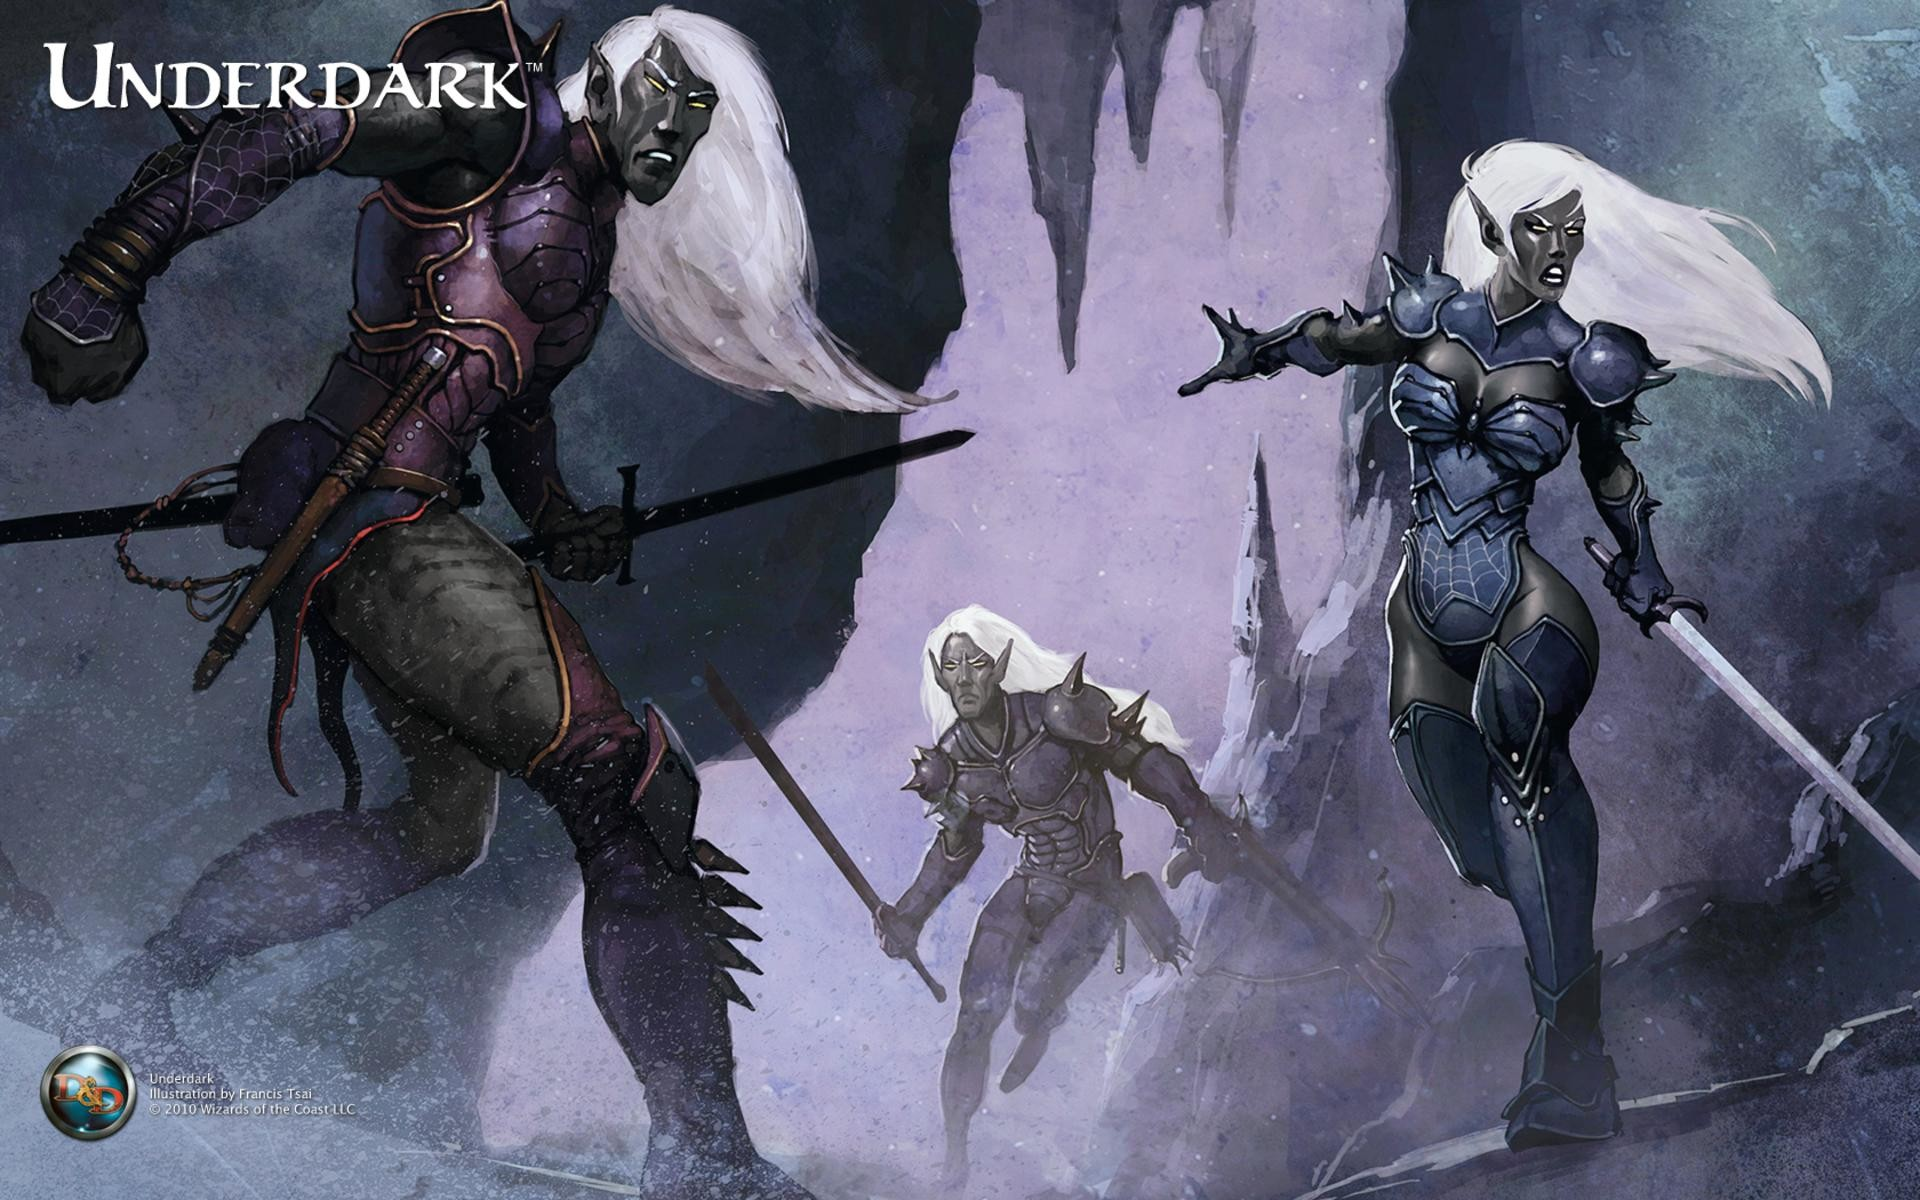 https://pic1.win4000.com/wallpaper/0/510a035a5c6f6.jpg   Dungeons & Dragons    Pinterest   Dark elf, Fantasy characters and RPG